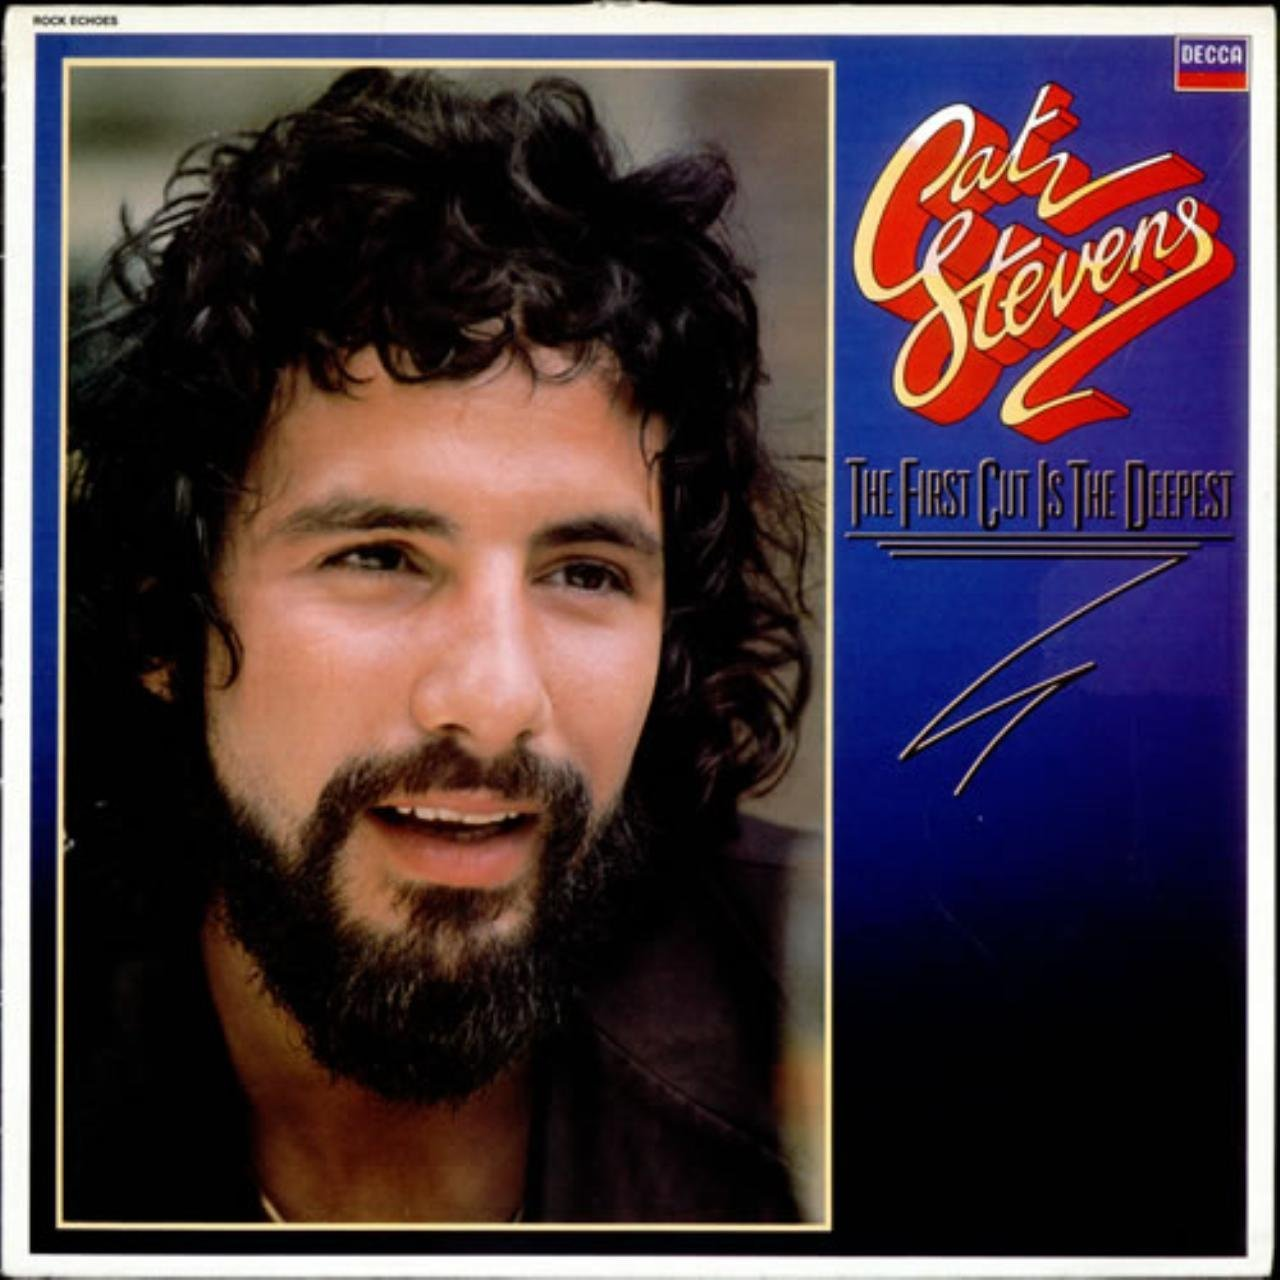 The First Cut Is The Deepest Cat Stevens Justinguitar